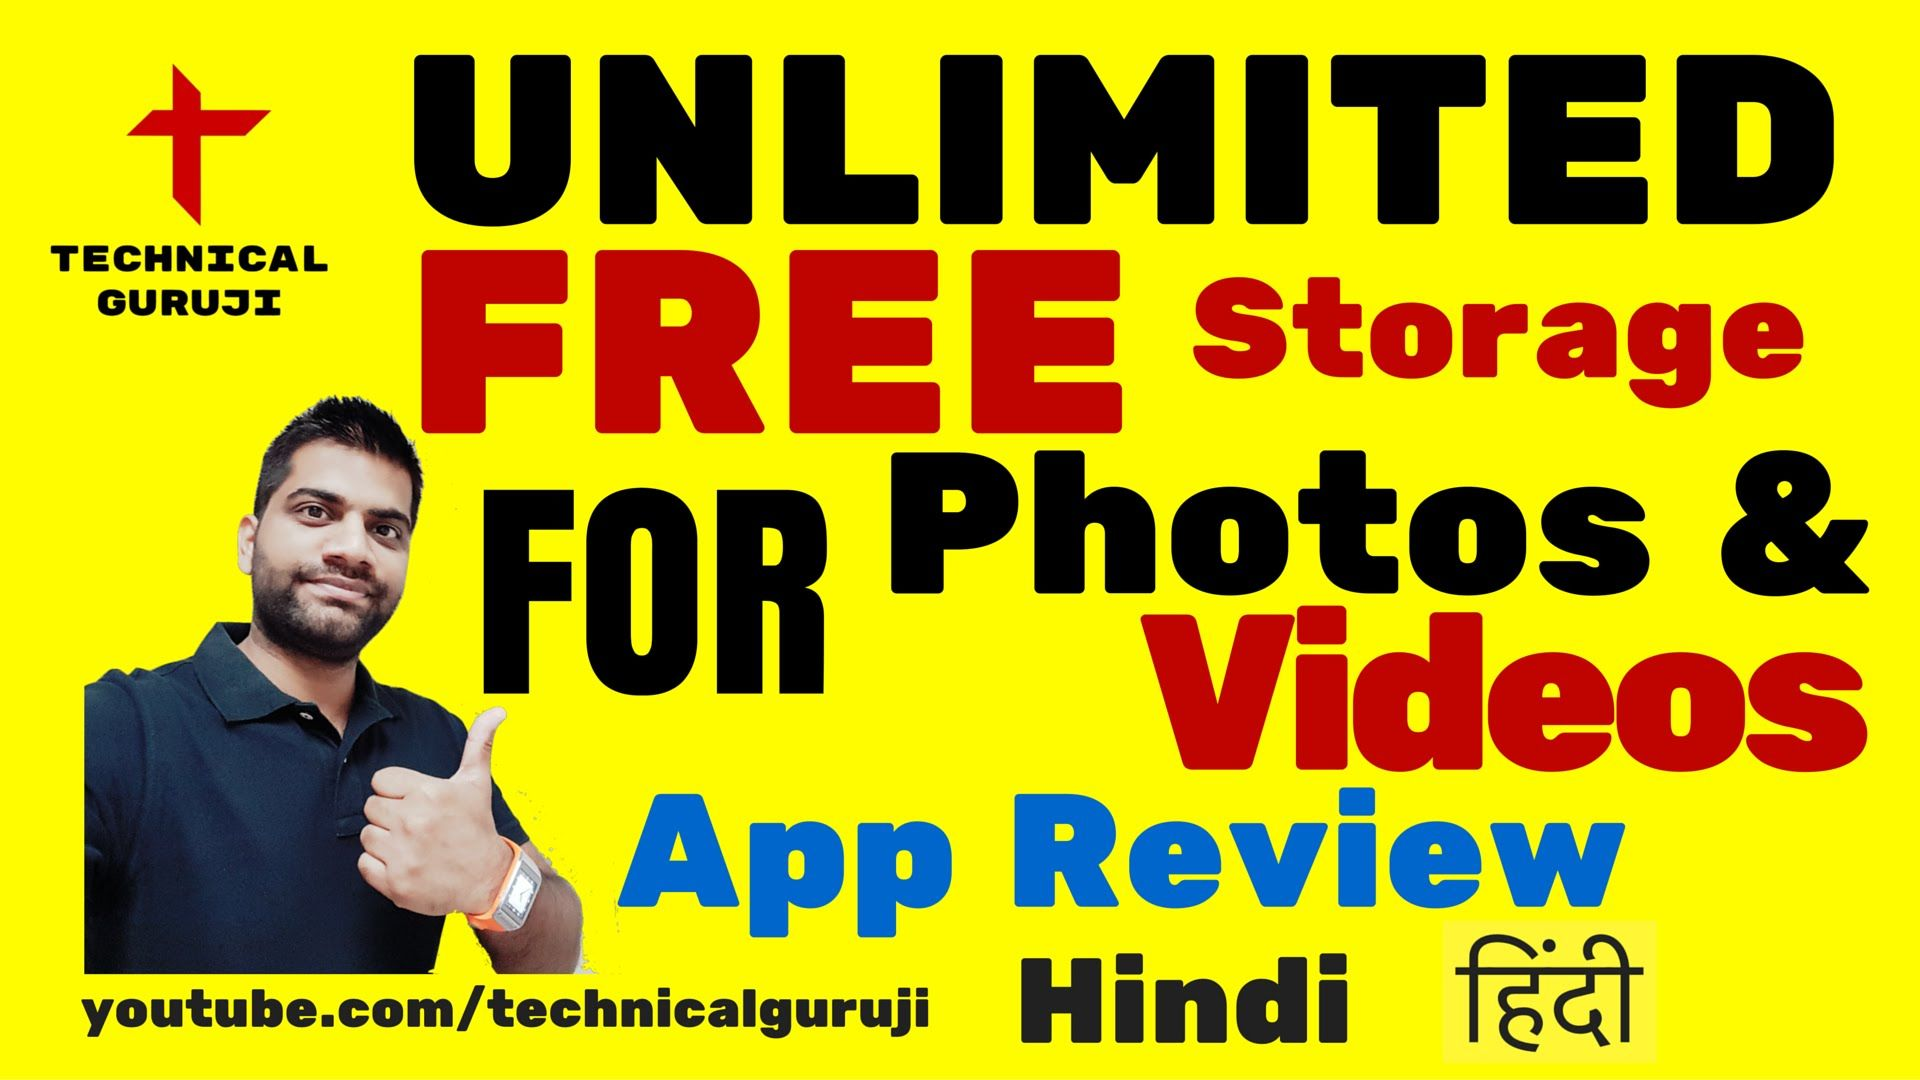 [Hindi] Unlimited Cloud Storage for Photos and Videos